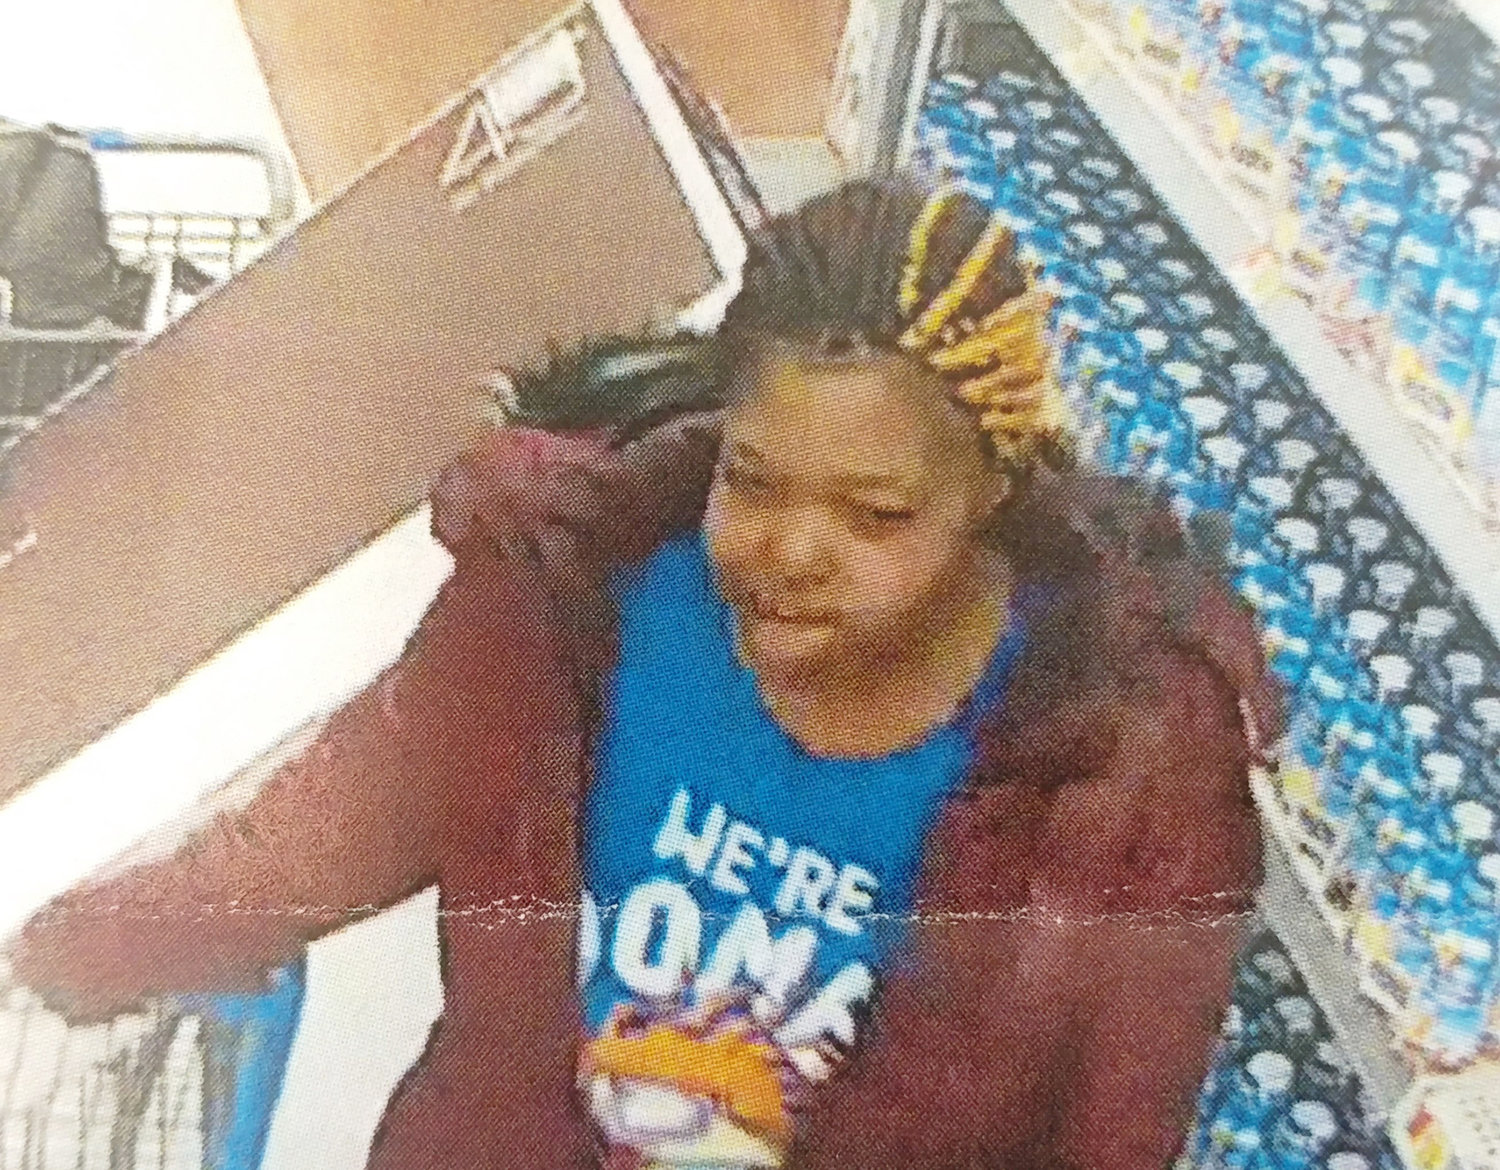 RECOGNIZE HER? — This woman is wanted for stealing more than $1,000 worth of merchandise from Walmart on Rome-Taberg Road on Saturday, according to state police. Anyone who recognizes her is asked to call state police at 315-366-6000. All calls will be kept confidential.